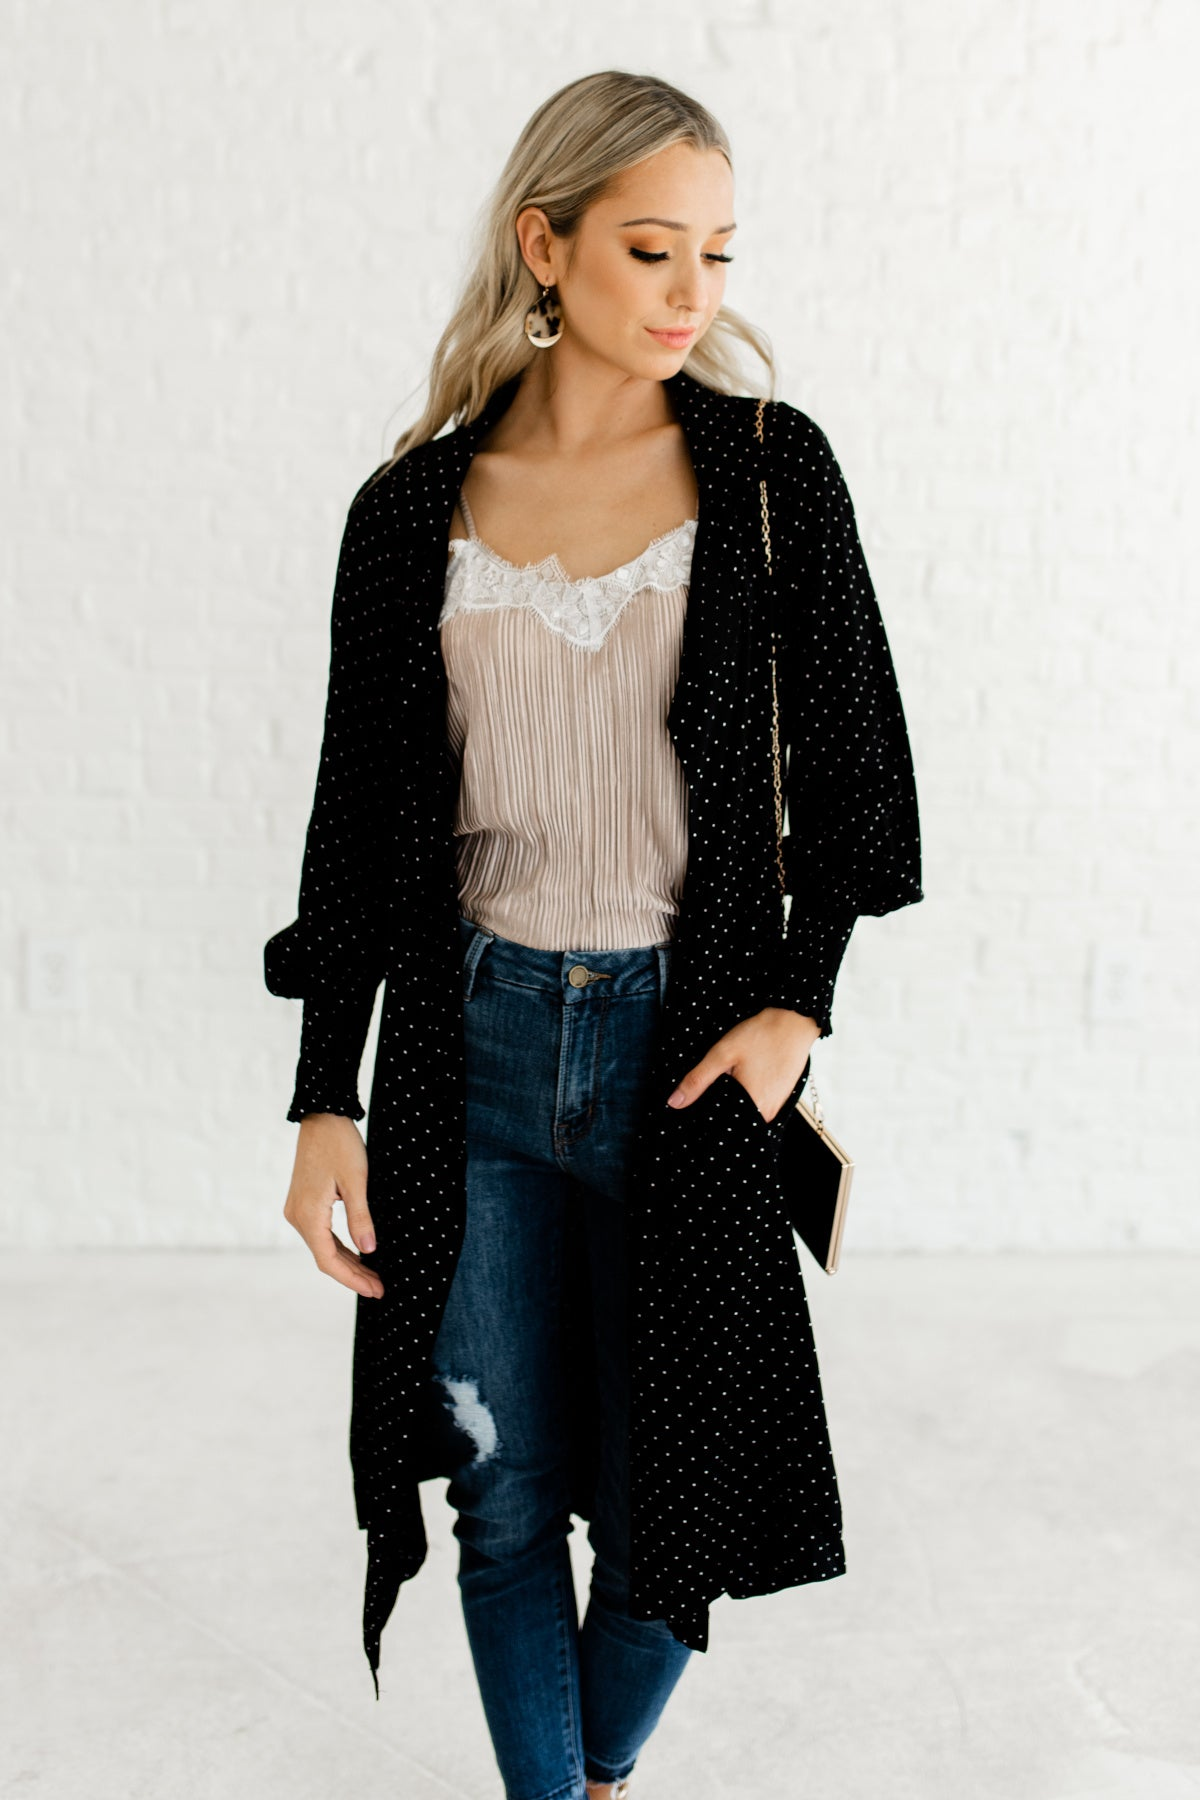 Black Polka Dot Longline Long Length Duster Kimono with Waterfall Front and Bishop Sleeves